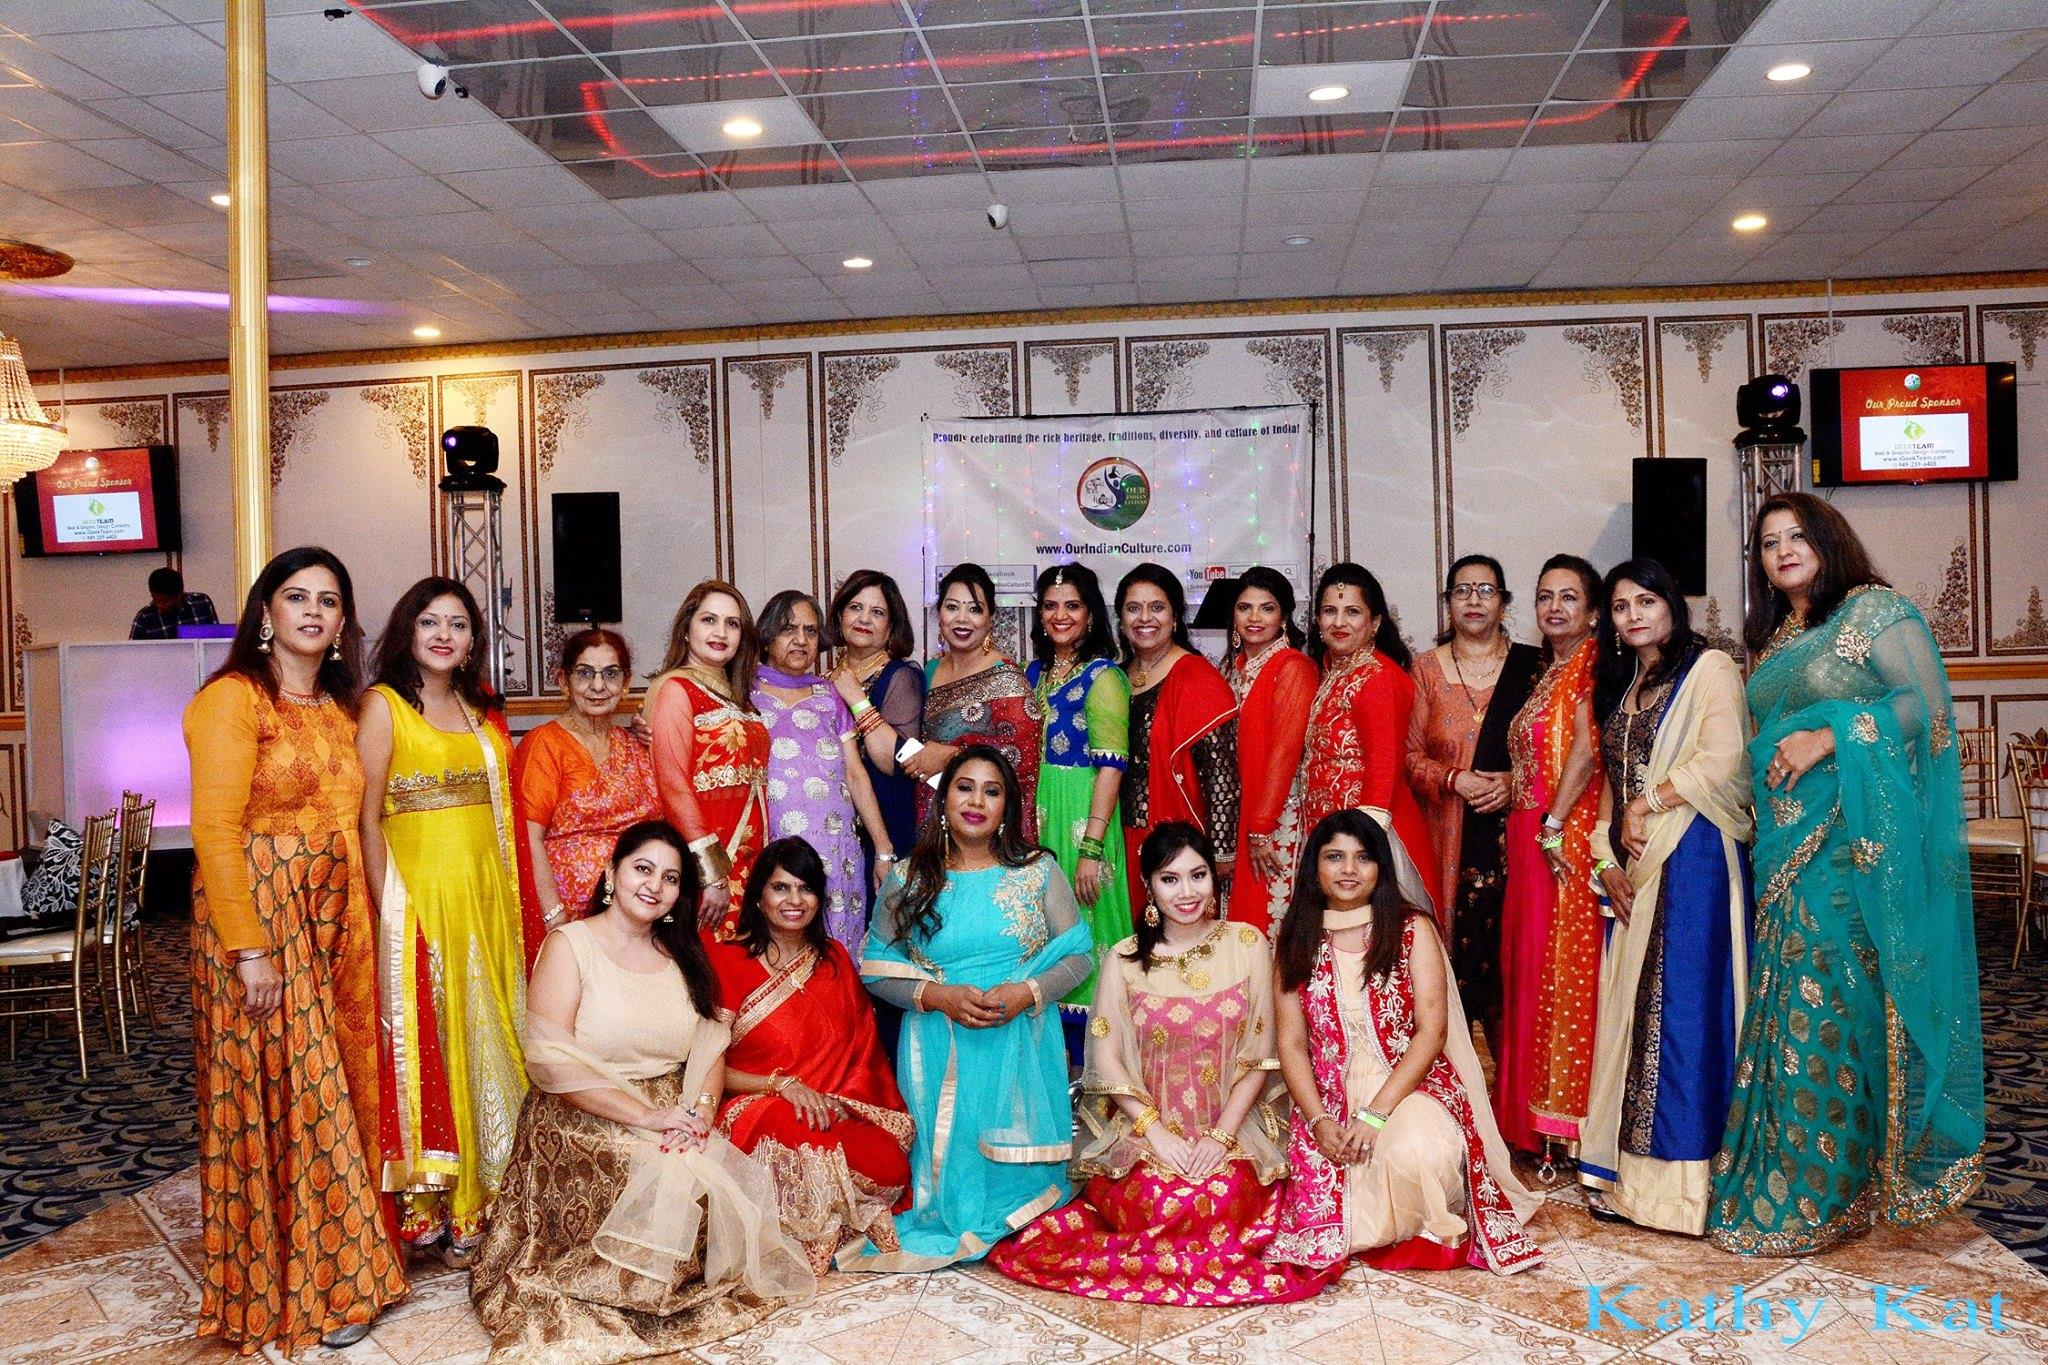 Diwali Party in Lake Forest, Orange County, organized by Our Indian Culture